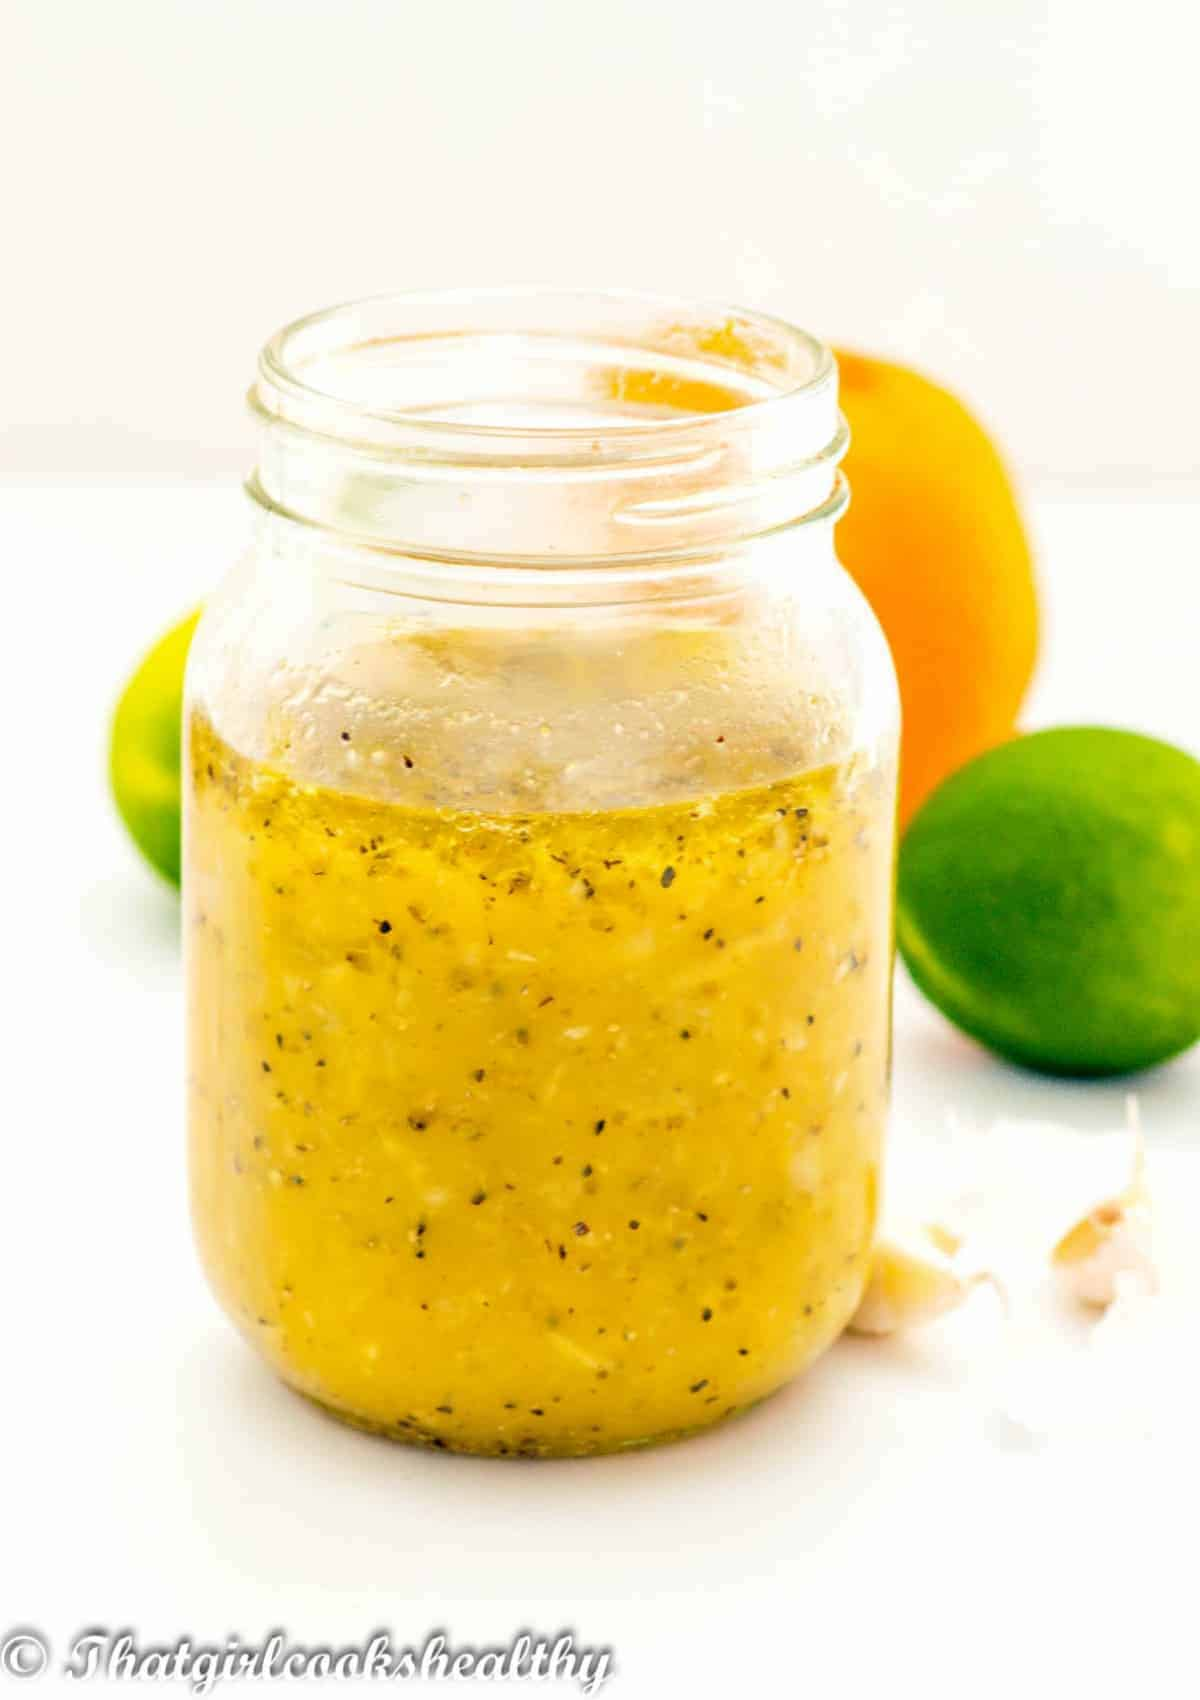 yellow marinate in jar